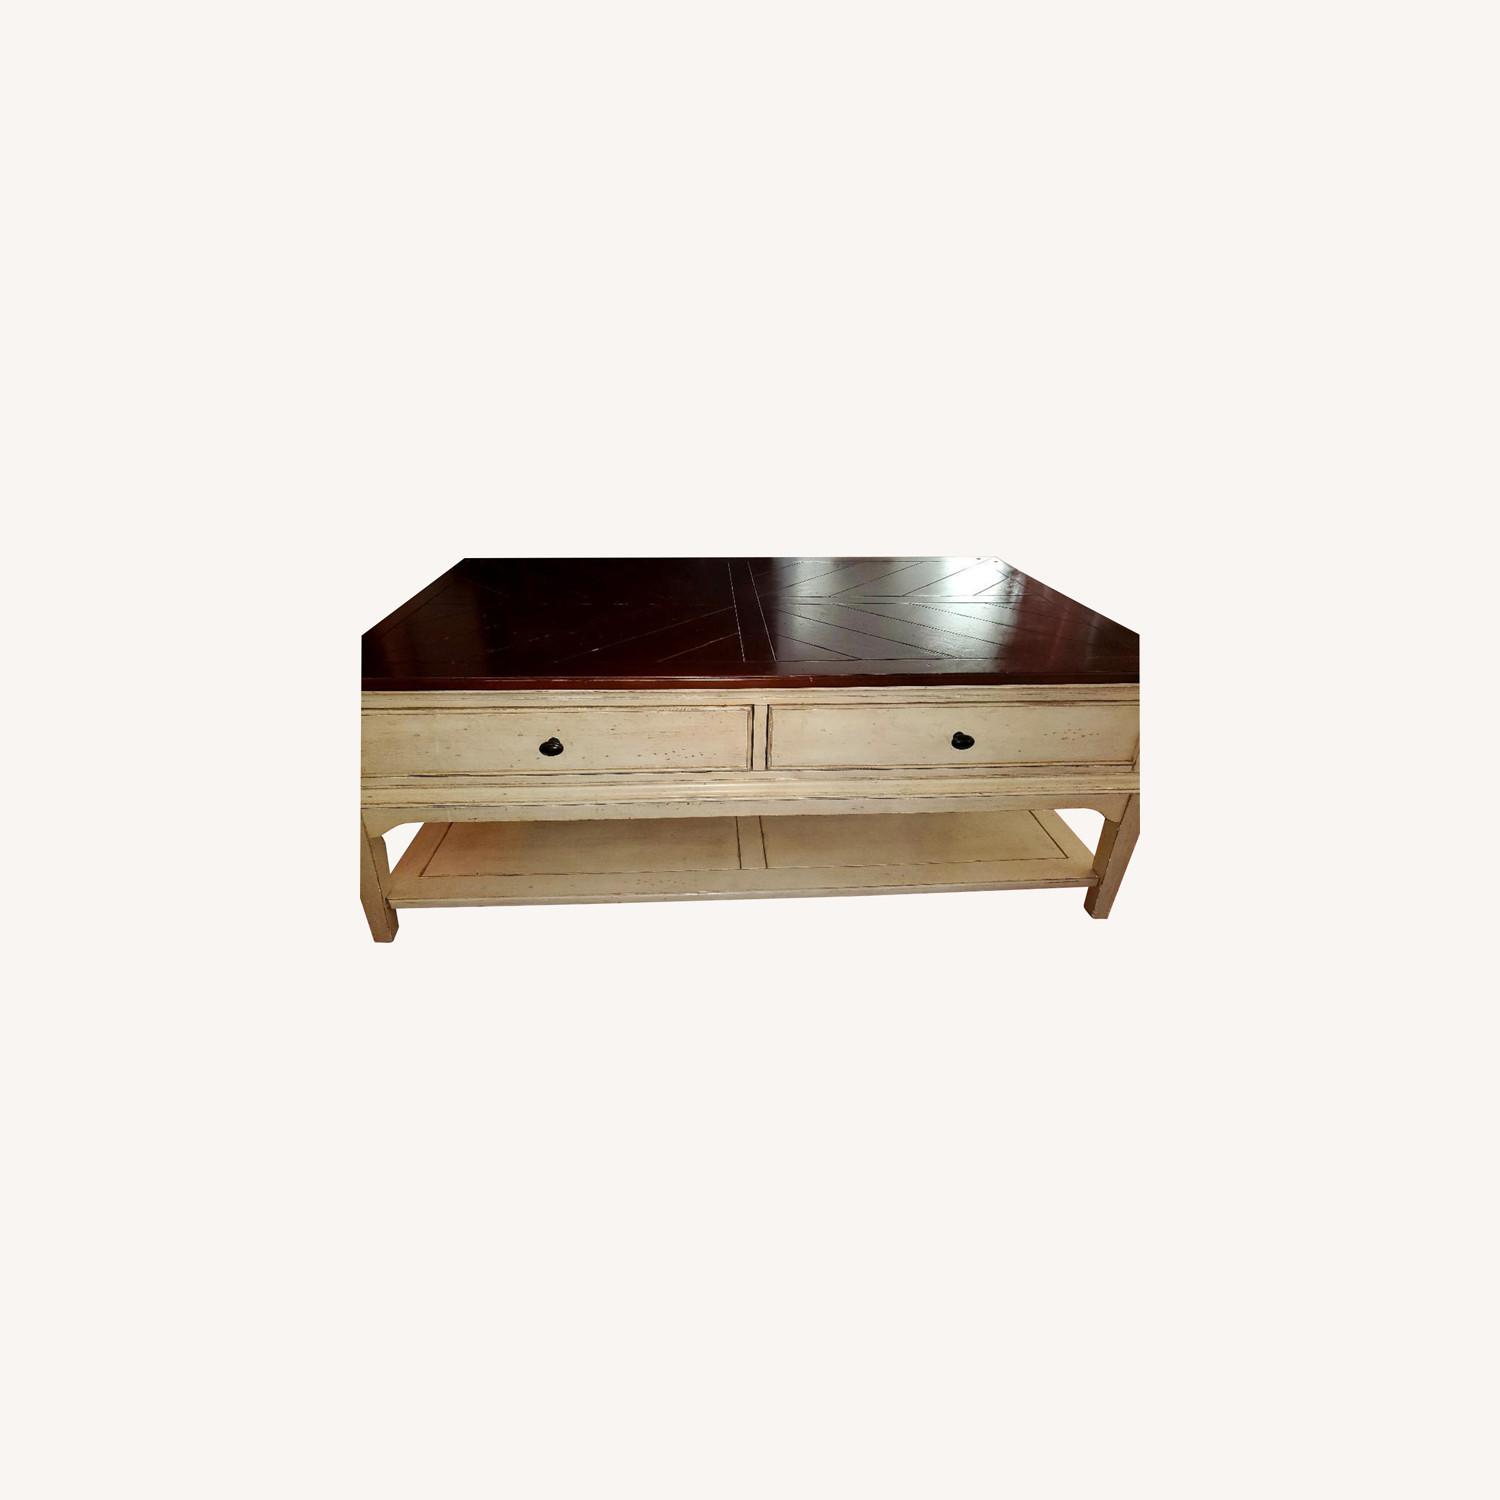 Wooden Coffee Table Farmhouse Chic - image-0